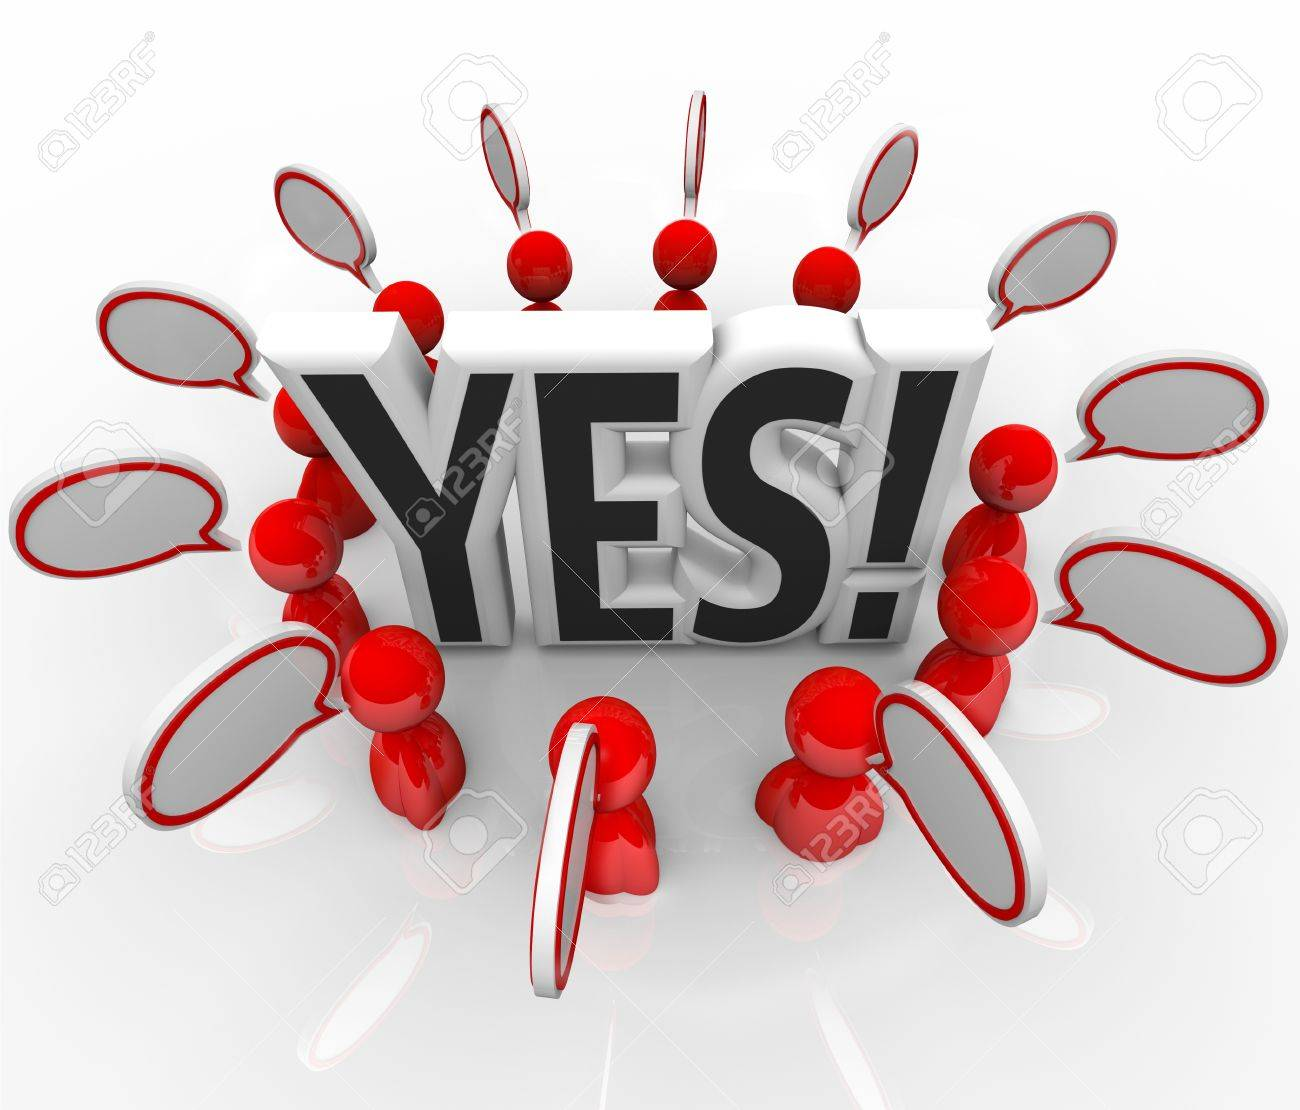 The word Yes surrounded by people and speech bubbles to symbolize answering with a positive response, acceptance or approval Stock Photo - 18912054